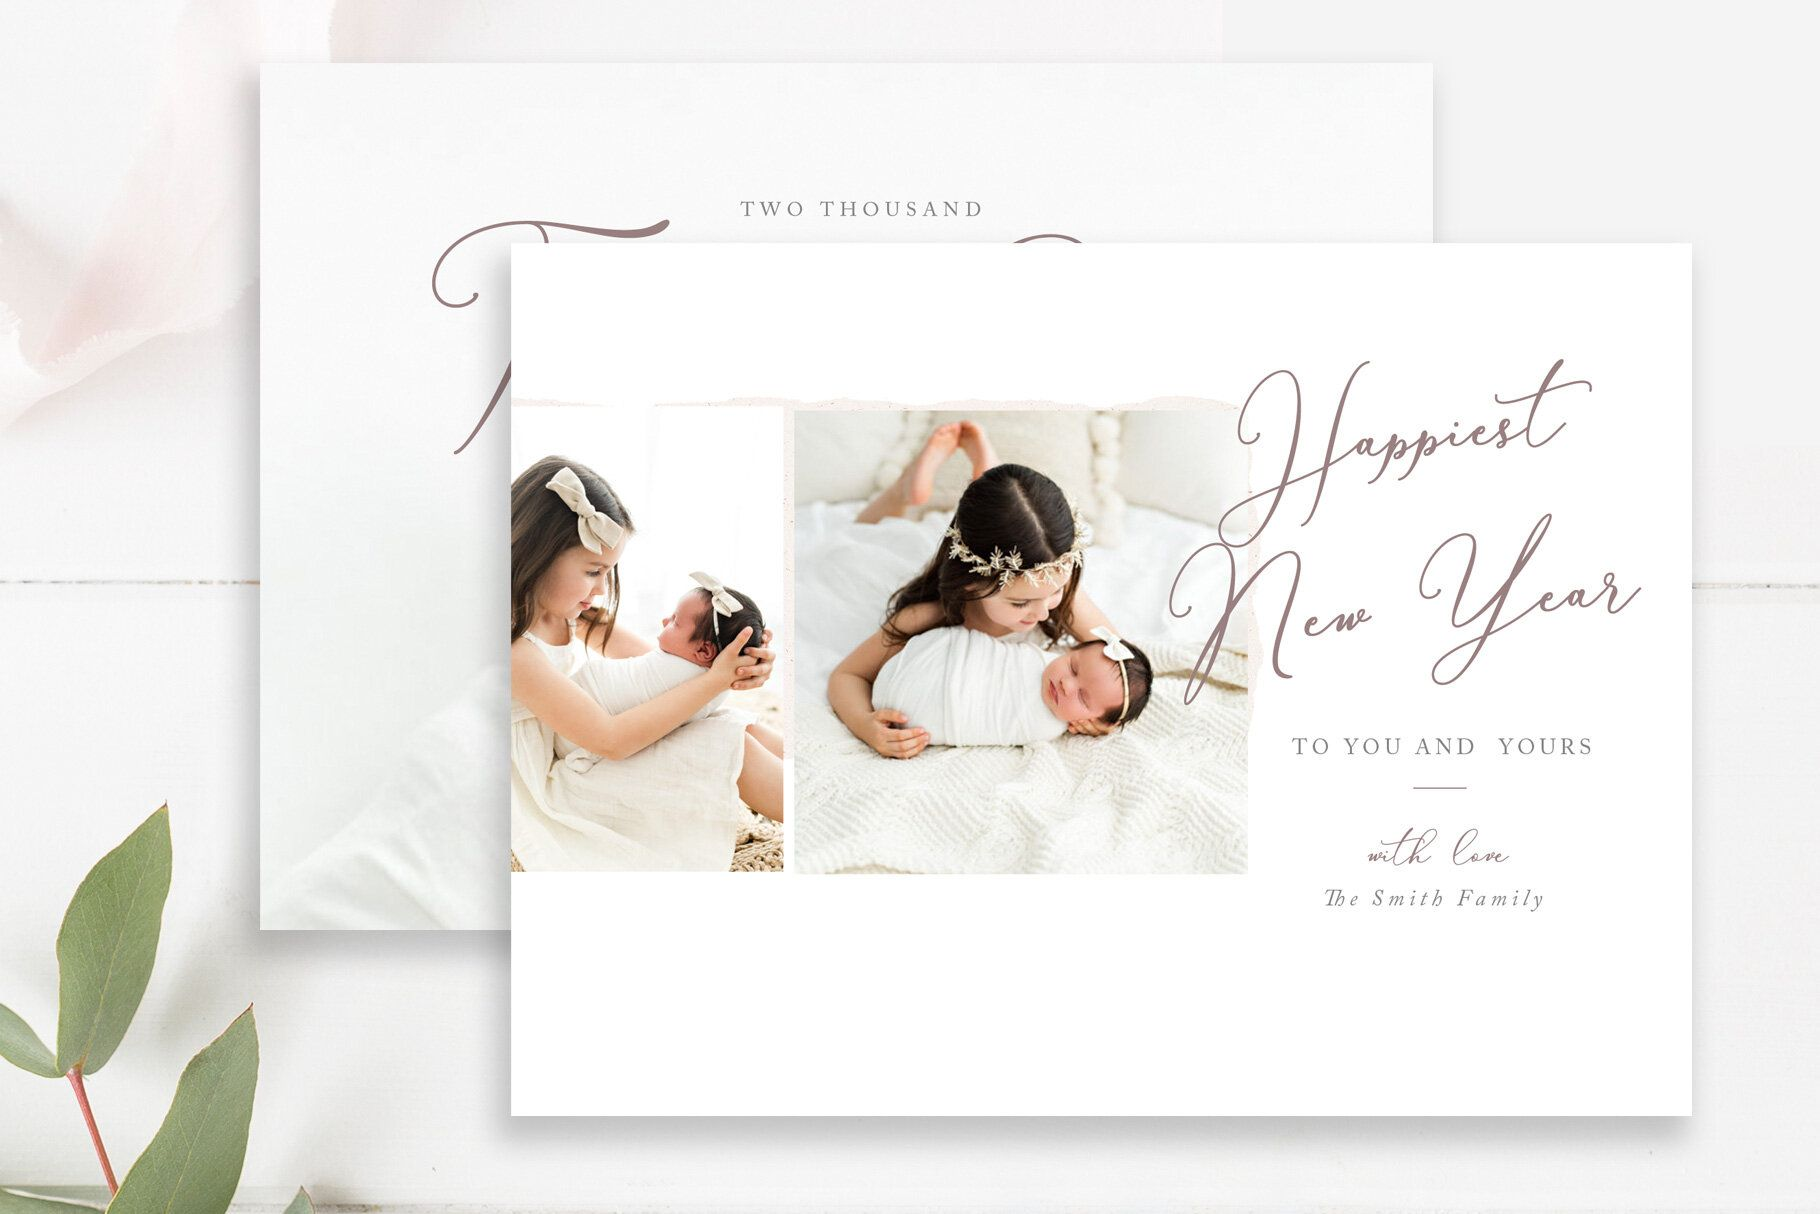 Minimalist New Years Photo Card Photoshop Templates For Photographers By Stephanie Design New Year Photos Photoshop Template Design Photo Cards